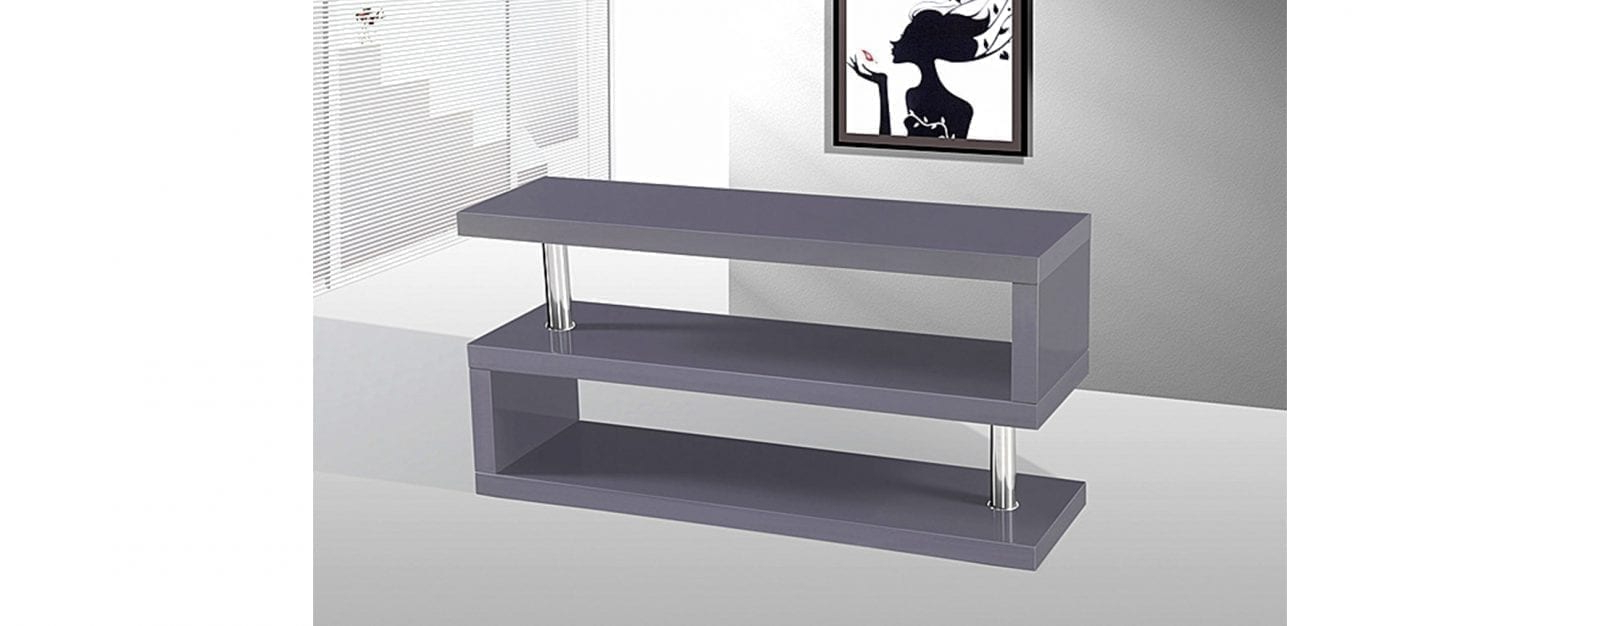 Best And Newest Charisma Tv Stands With Charisma Tv Stand In Grey High Gloss (View 10 of 10)